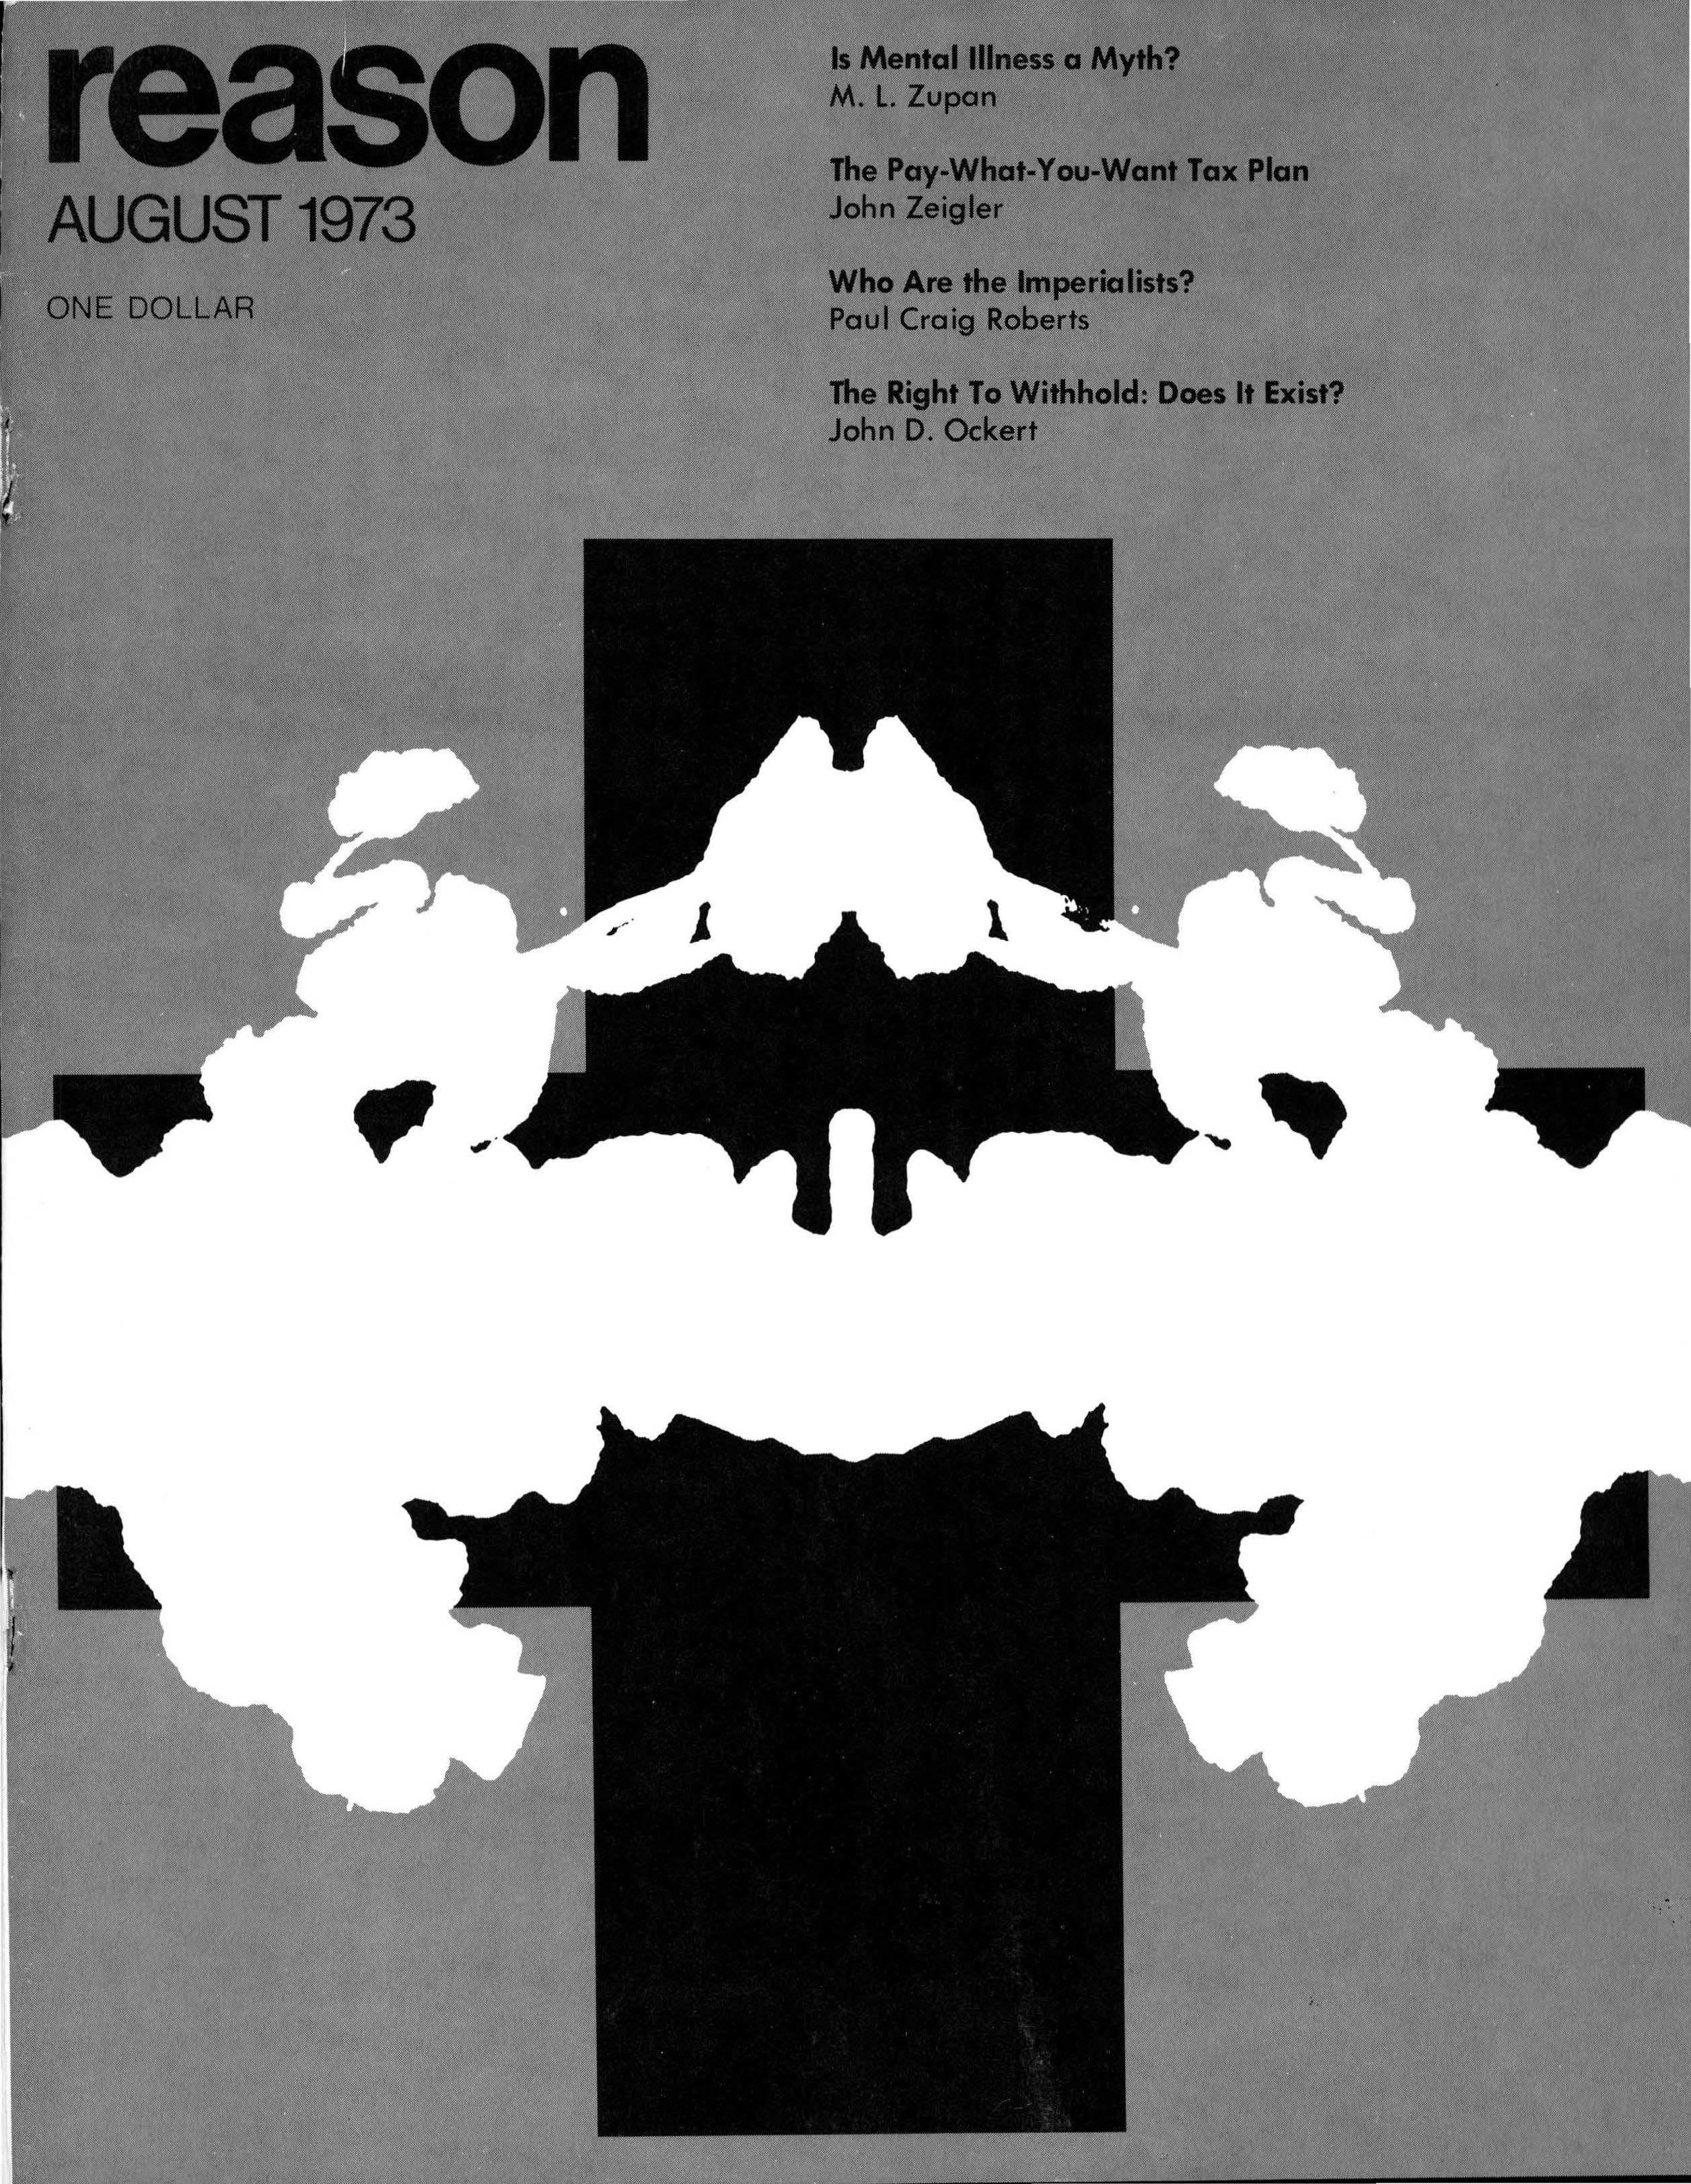 Reason Magazine, August 1973 cover image